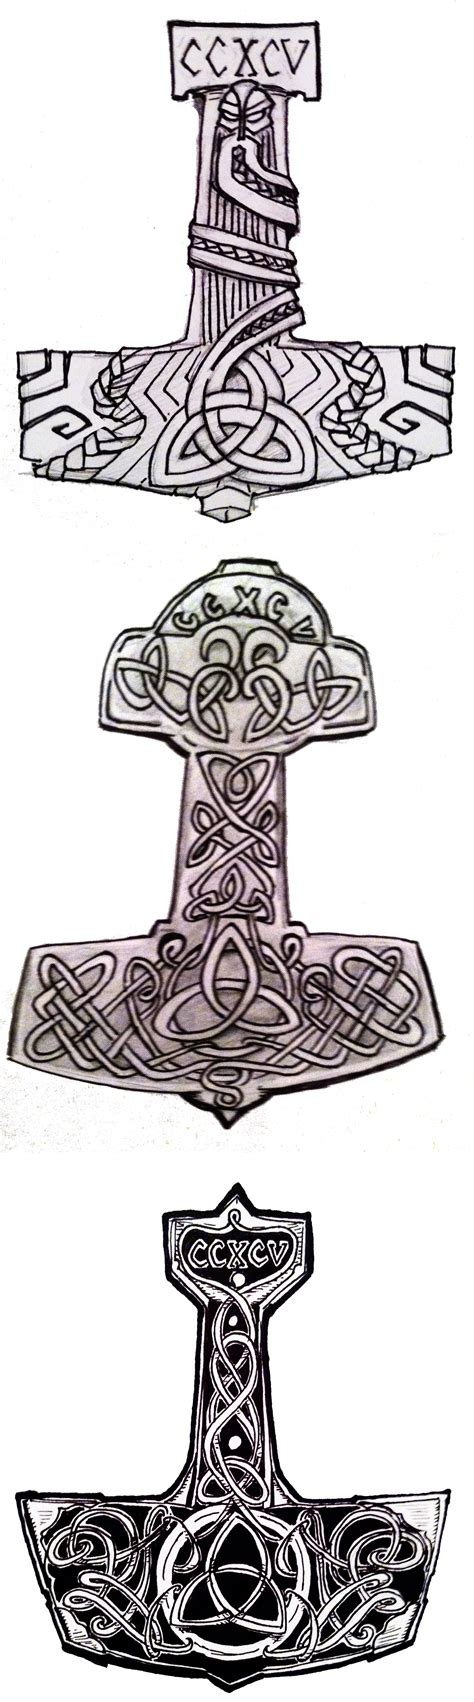 thor hammer tattoo designs thor s hammer design by doodlesanddaydreams on